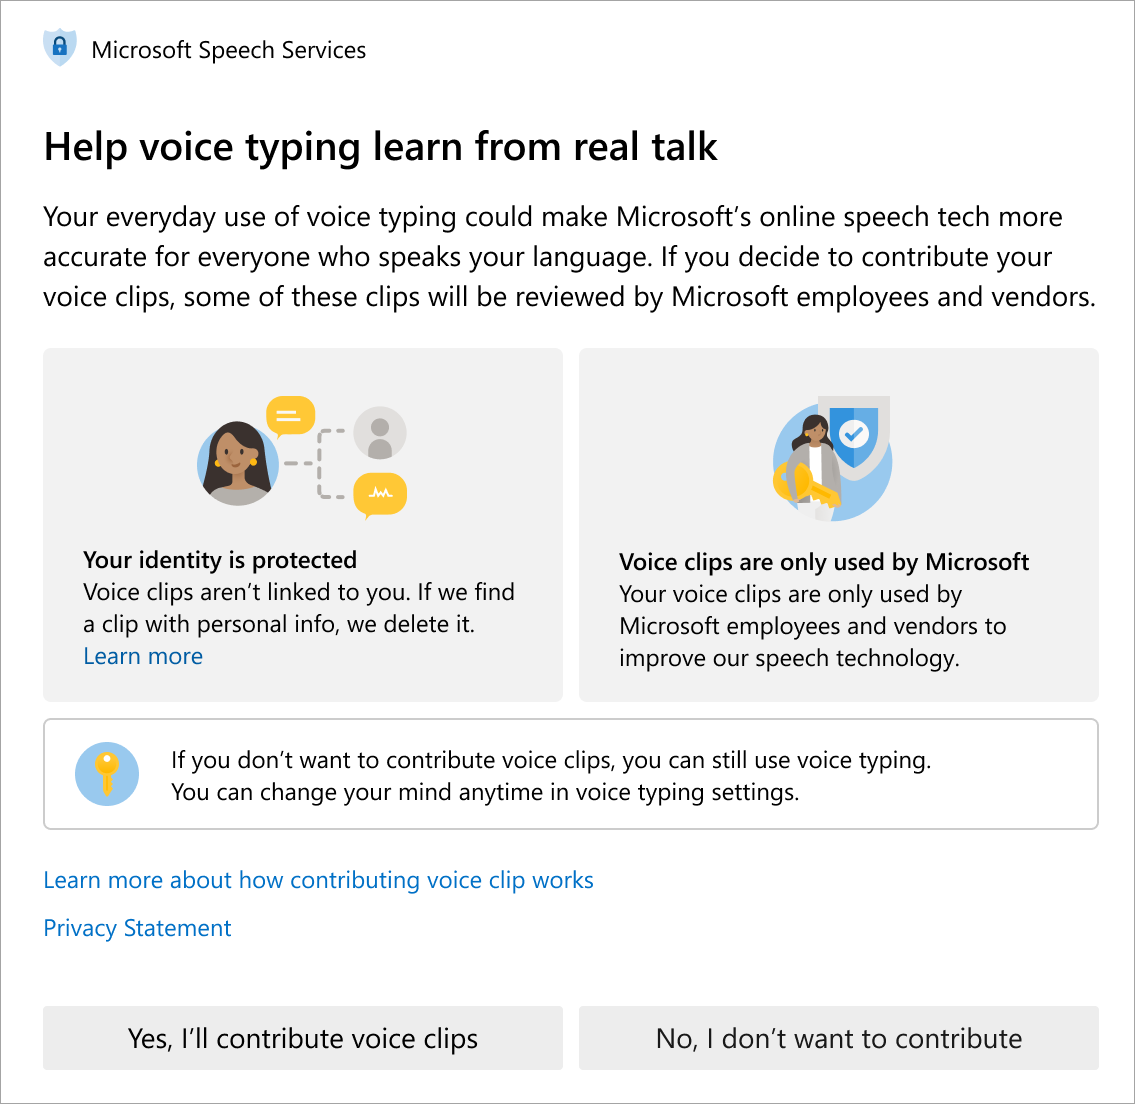 Microsoft updates voice clips policy